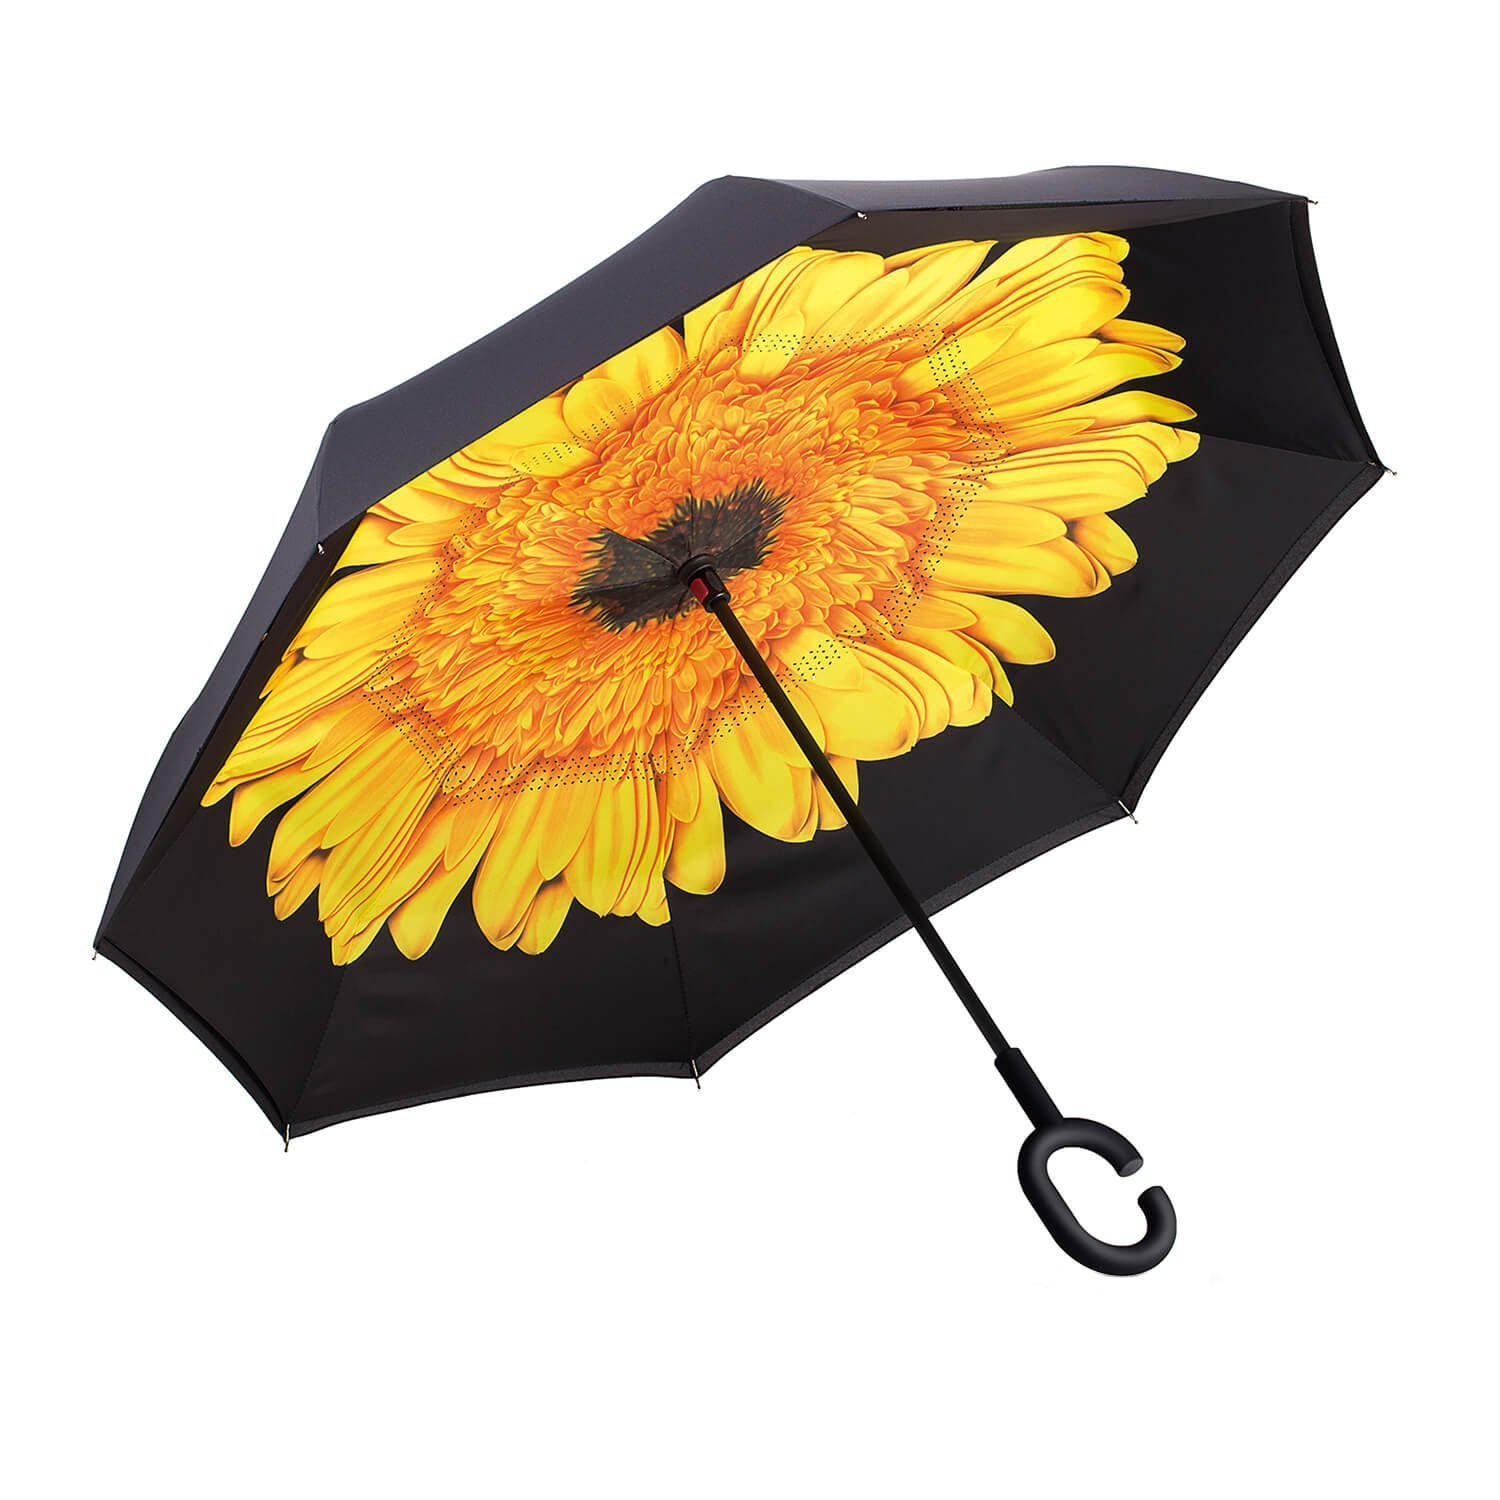 Inverted Umbrella by Satchpro, Reverse Open Windproof Umbrella with C-Shaped Handle & Carrying Case (Sunflower)